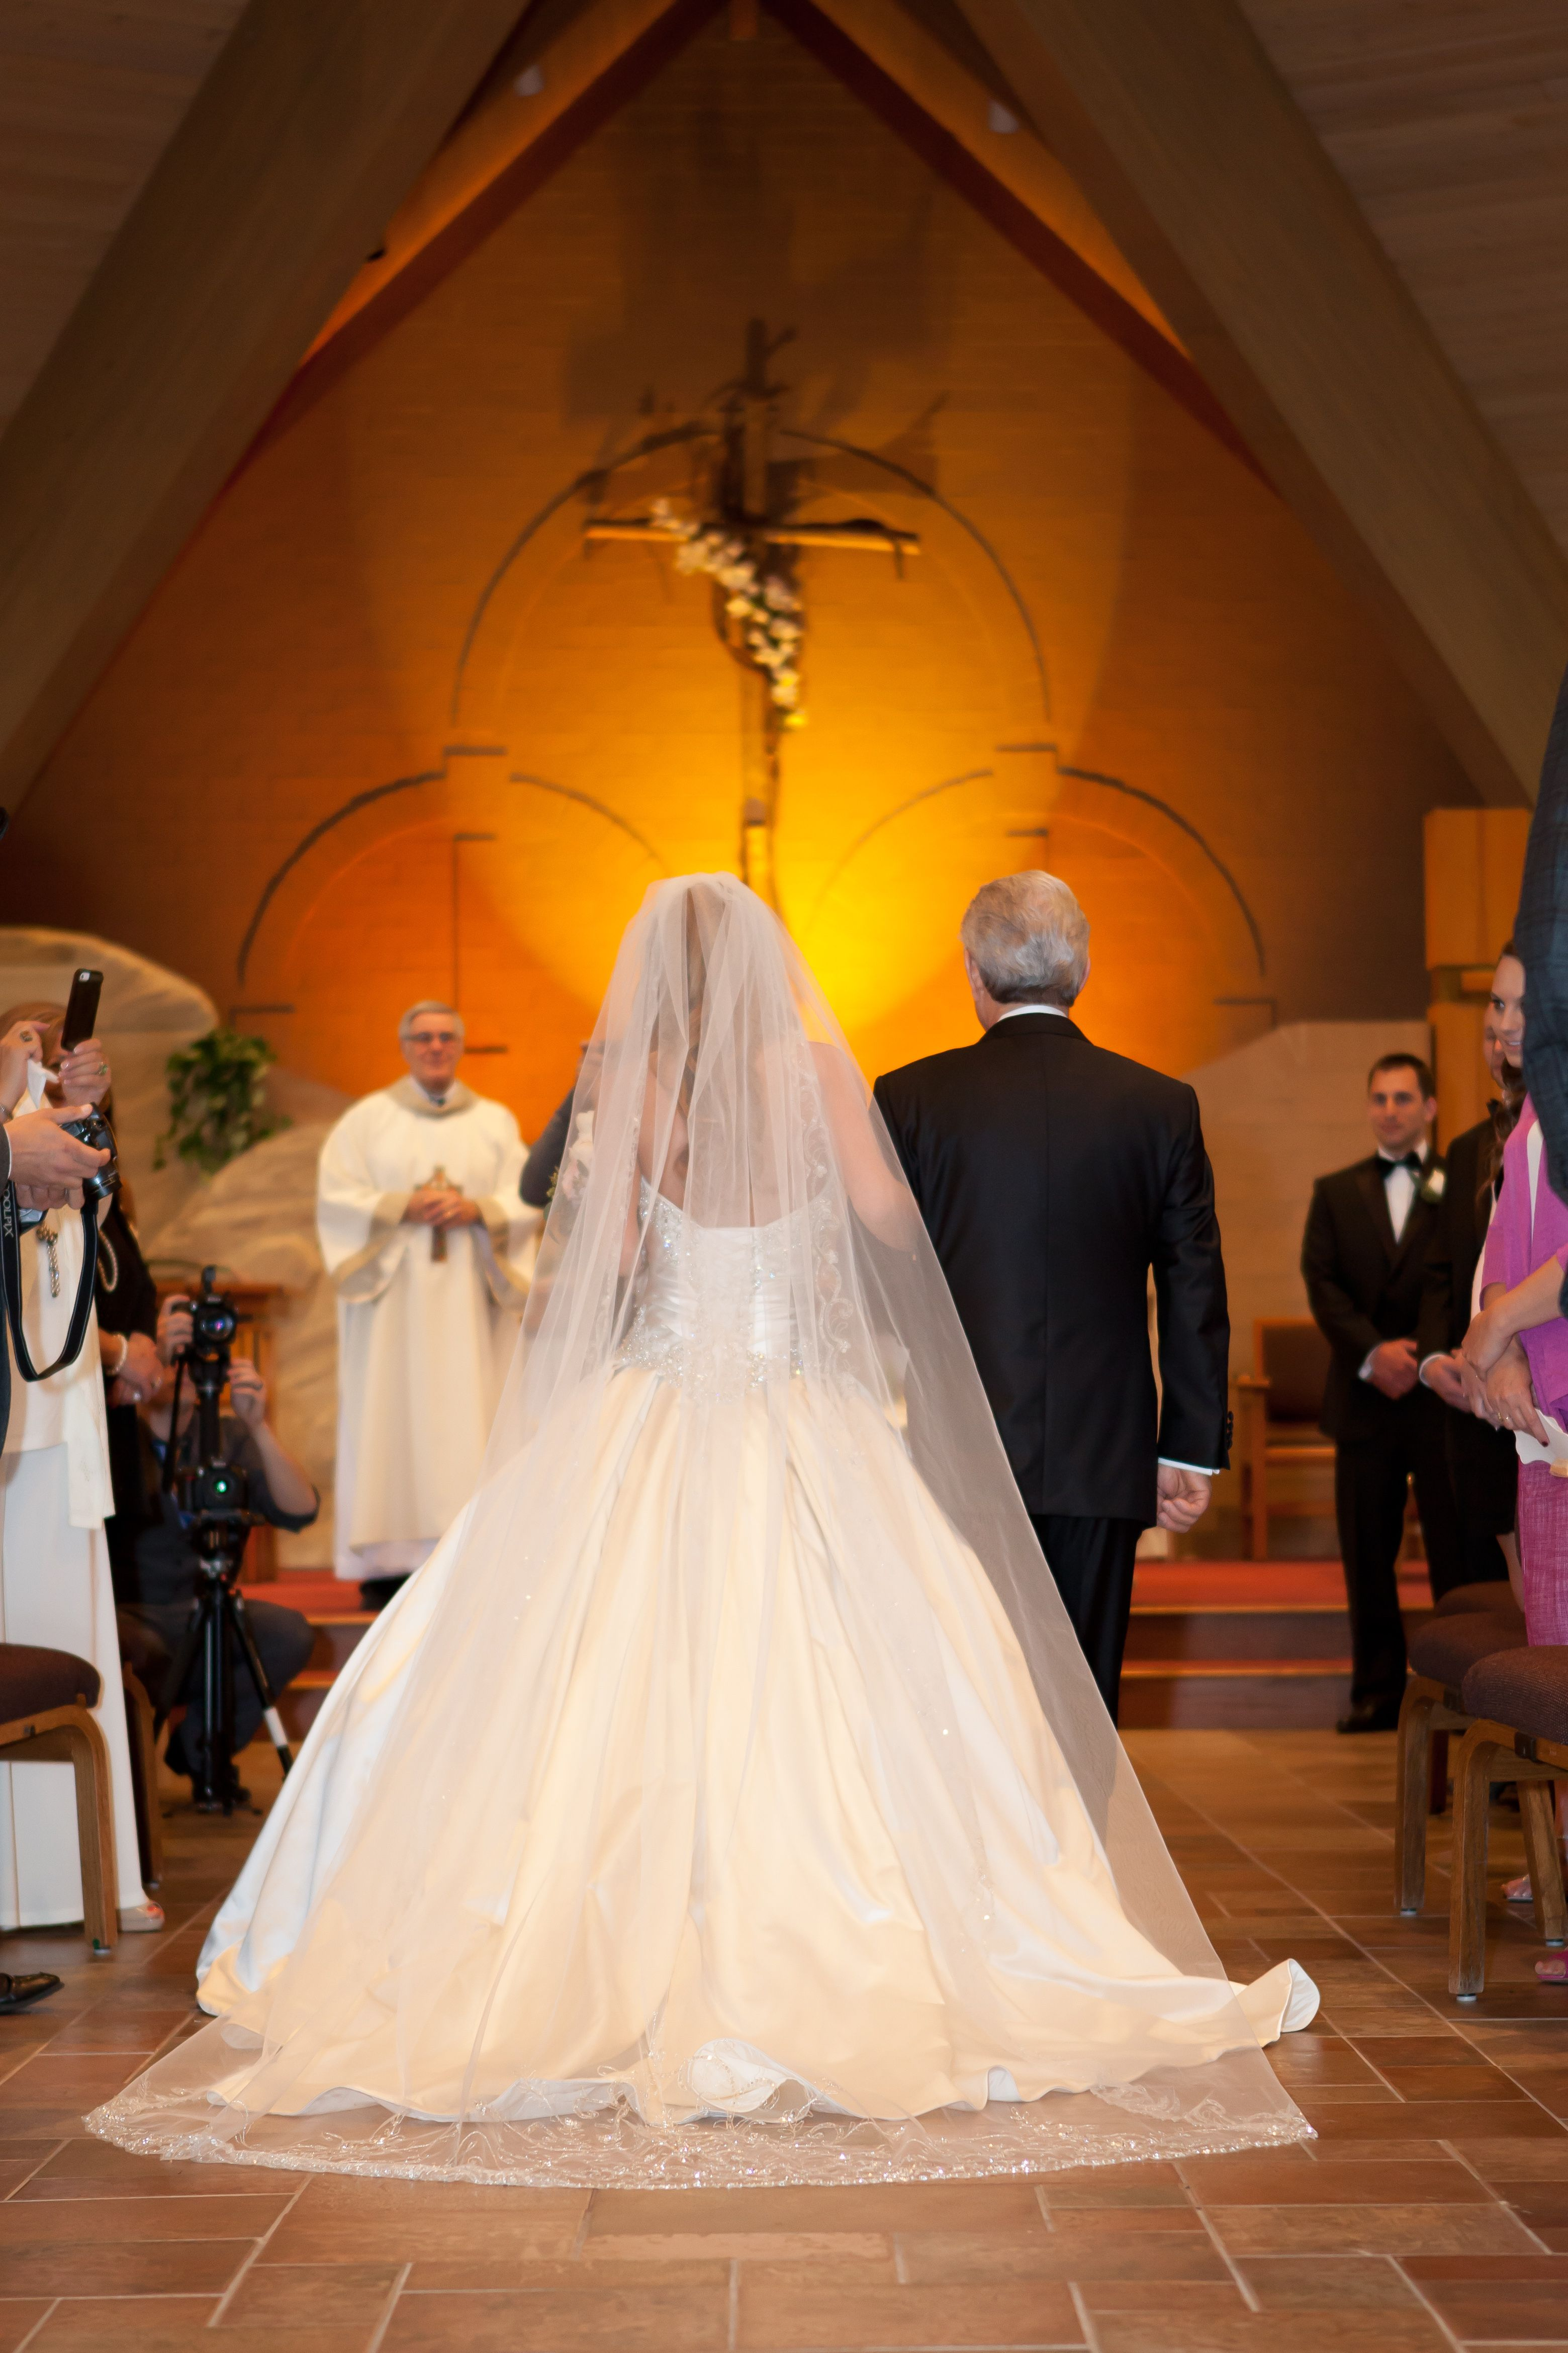 Pin by Emma Suhaj on MY HAPPILY EVER AFTER BOARD Wedding